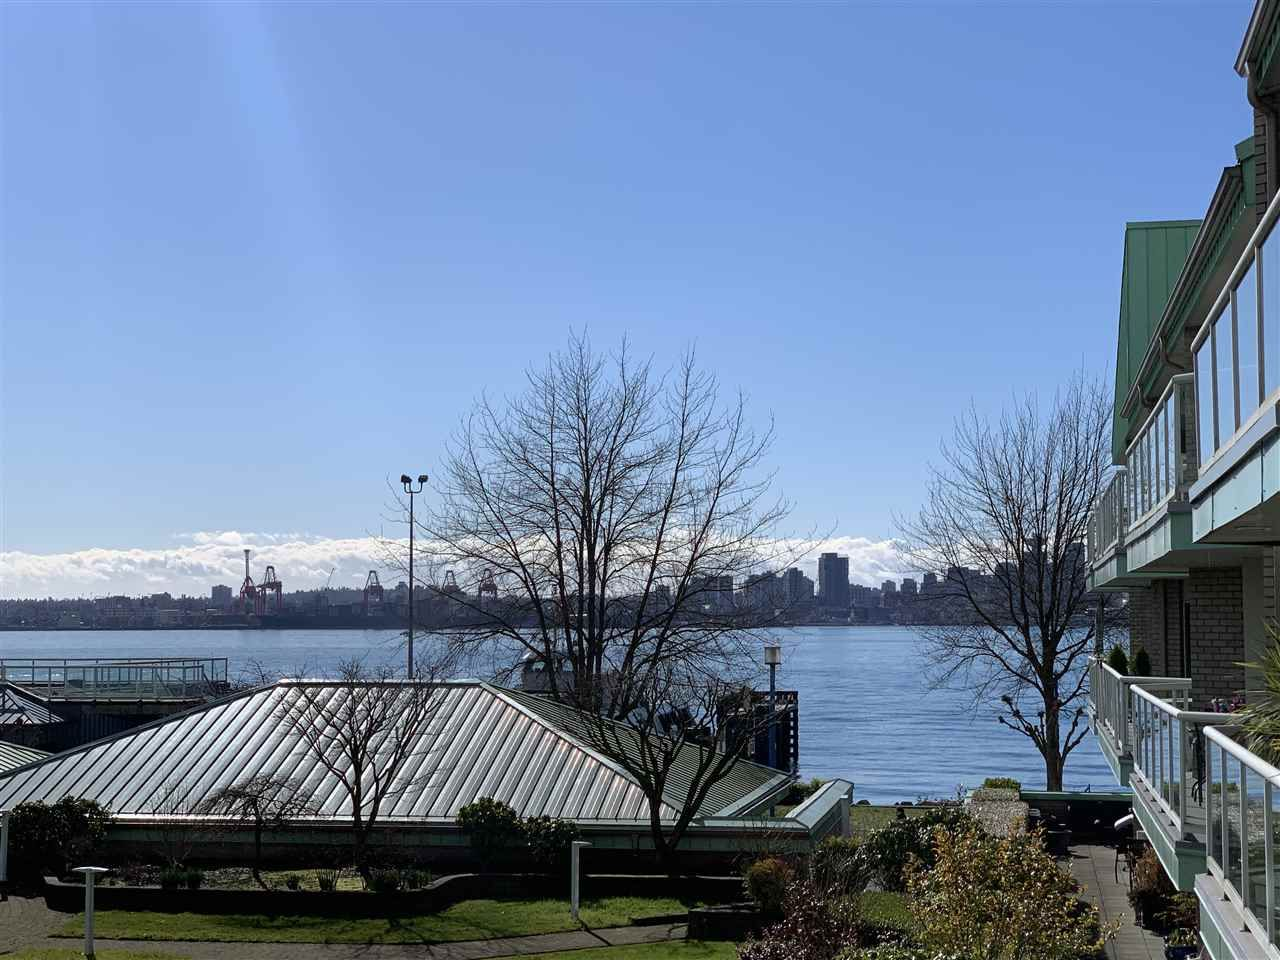 """Main Photo: 2201 33 CHESTERFIELD Place in North Vancouver: Lower Lonsdale Condo for sale in """"Harbourview Park"""" : MLS®# R2549622"""